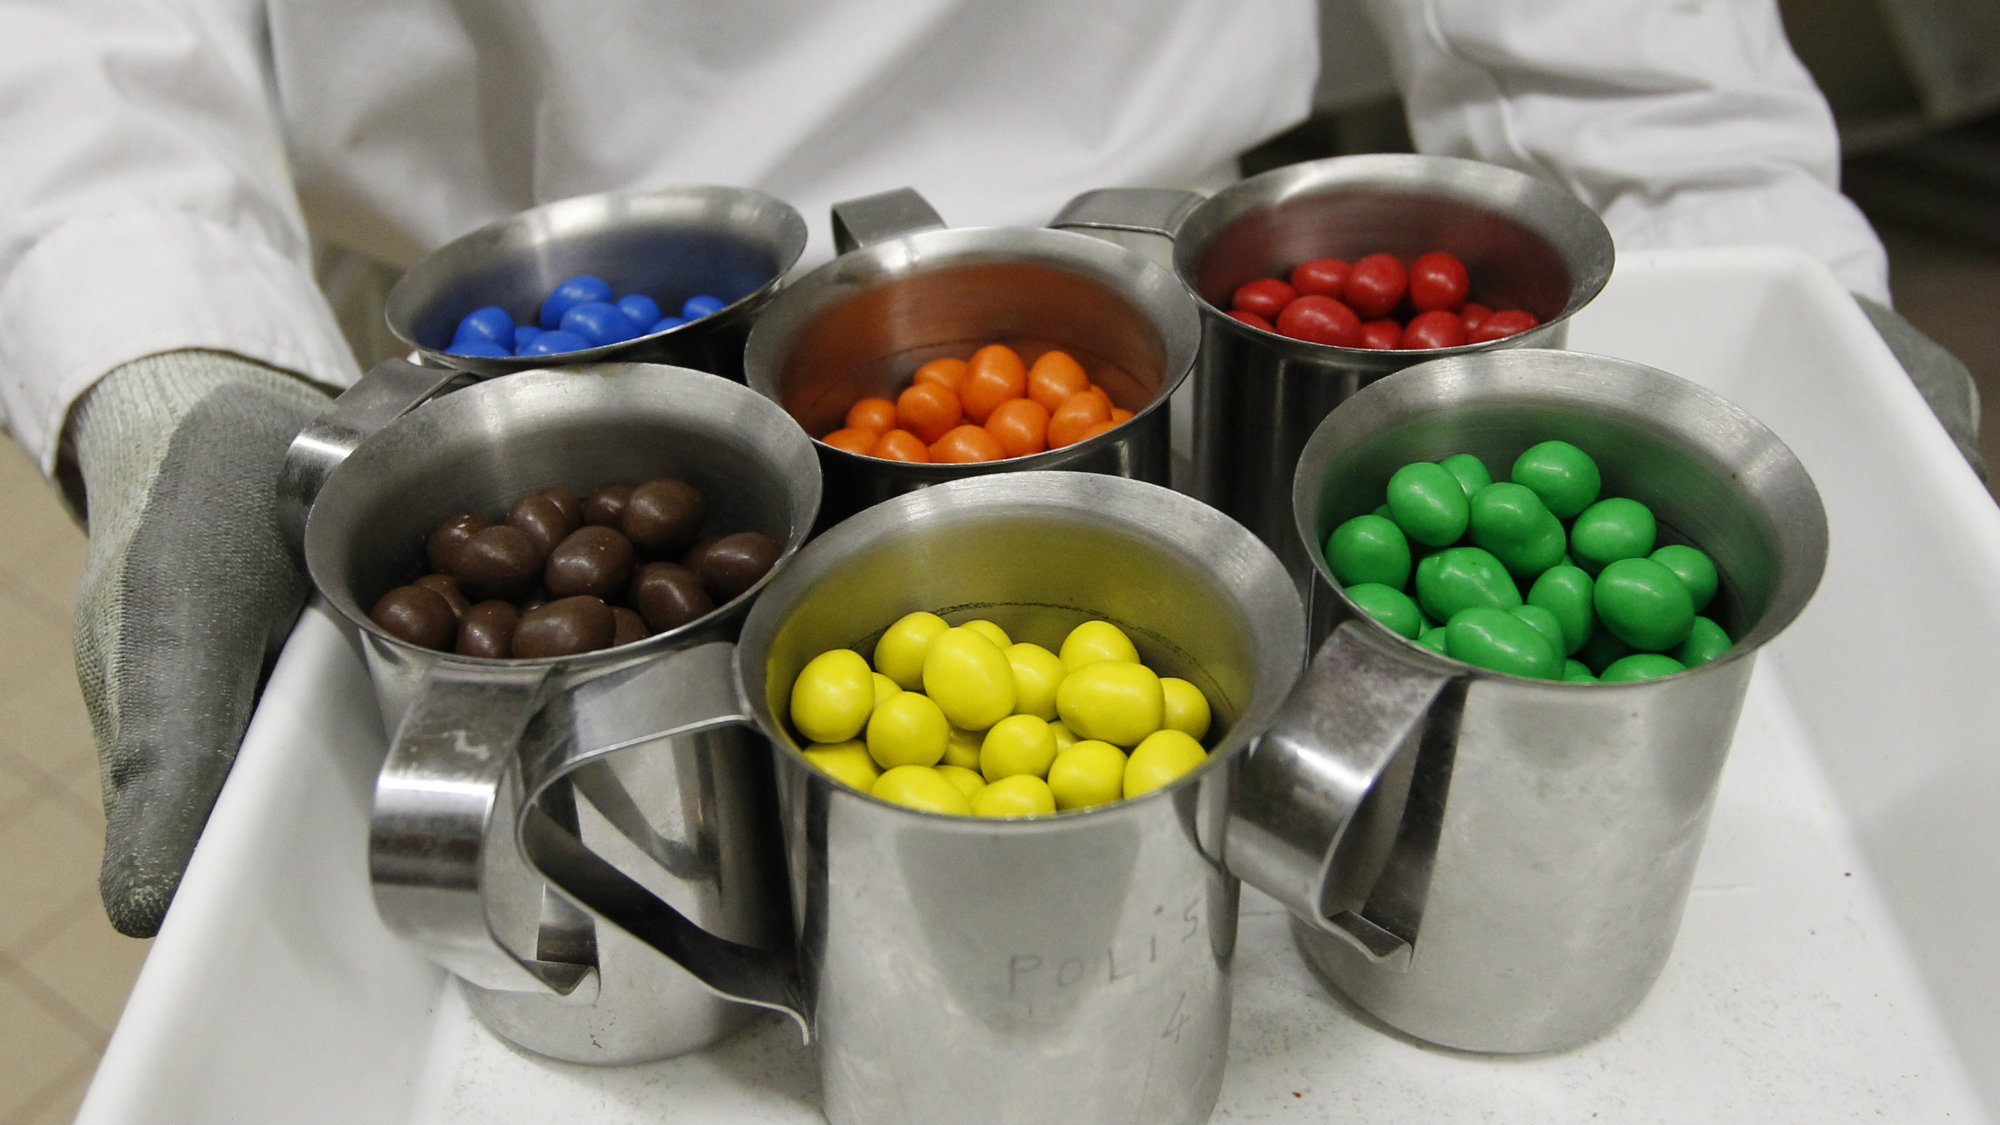 An employee holds a tray of different-coloured M&M's candies at the production line of candy and chocolate maker Mars Chocolate France's plant in Haguenau, eastern France, December 13, 2011.